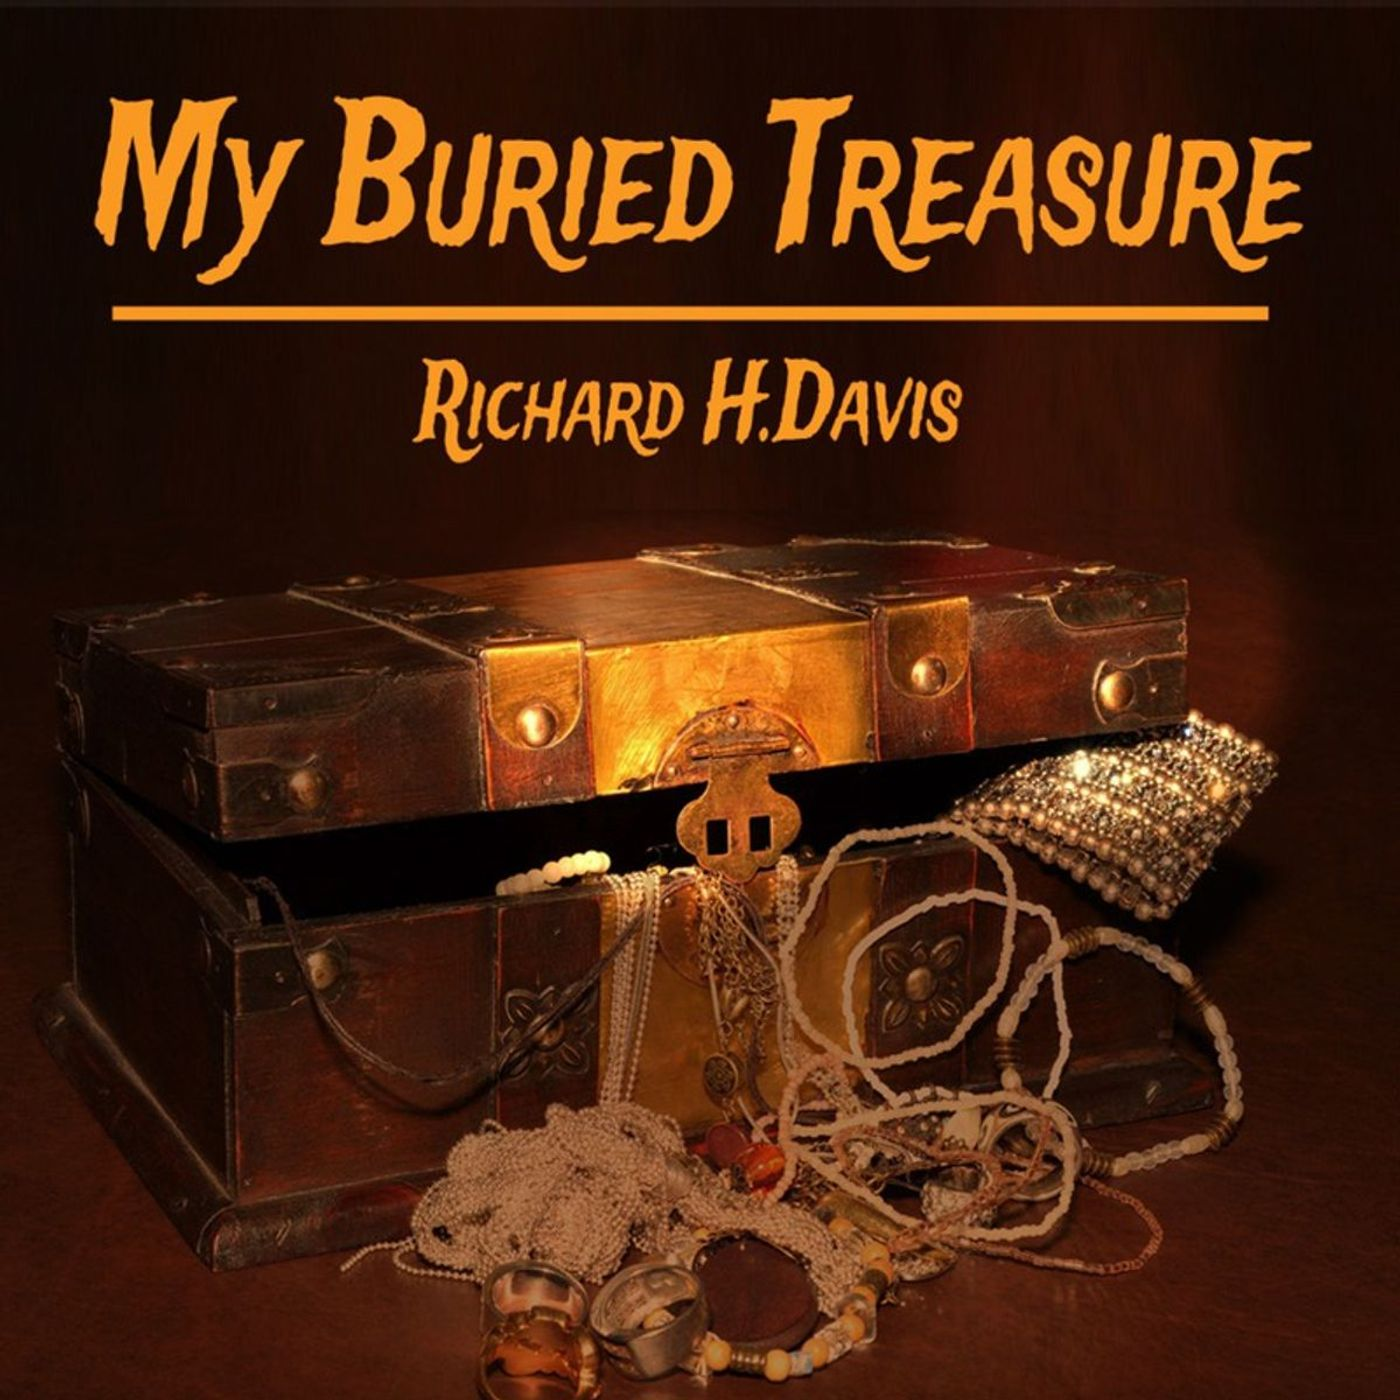 My Buried Treasure by Richard Harding Davis on the BIG Radio show